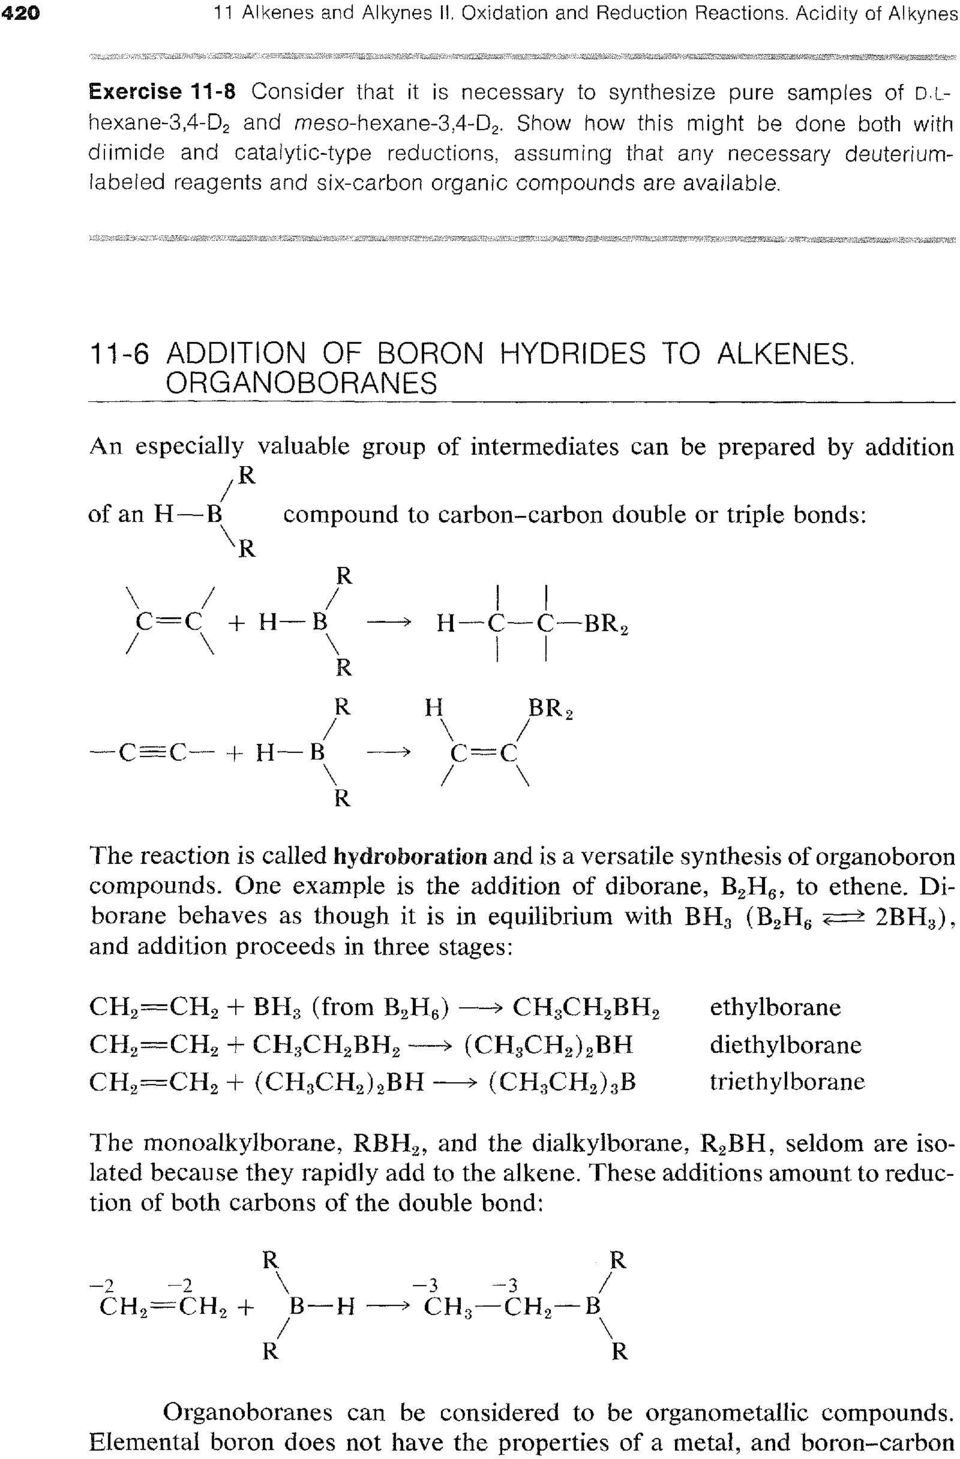 11-6 ADDITION OF BORON HYDRIDES TO ALKENES.